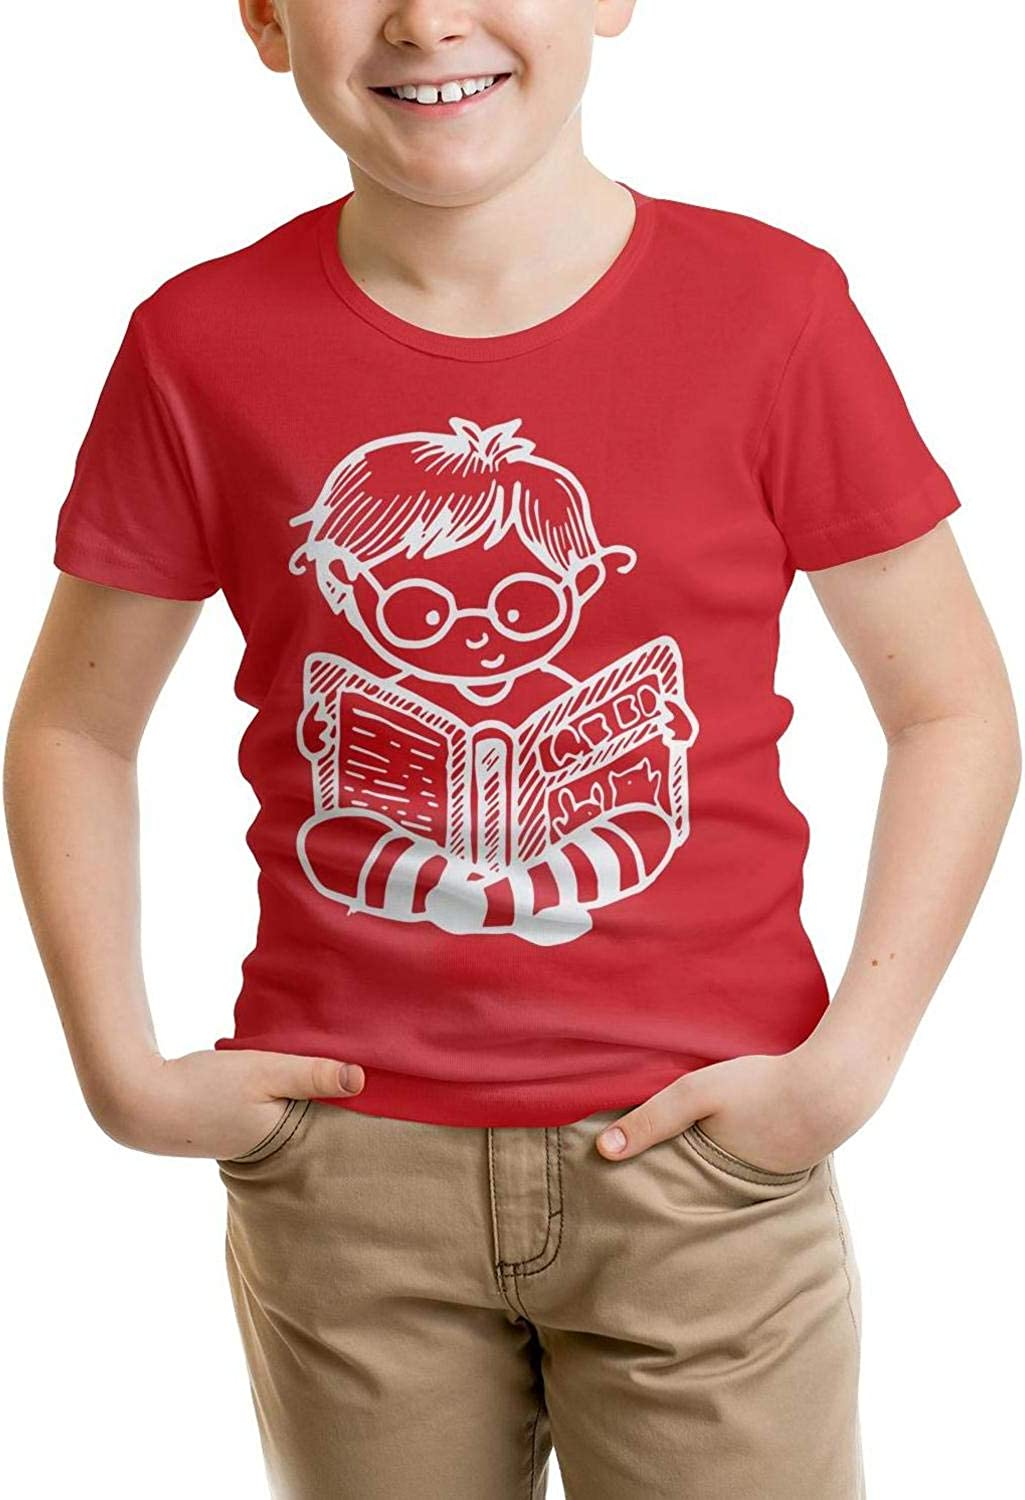 absolutemi Read Newspaper All cottonT Shirts Graphic forBoys Shirts Childrens Parttern